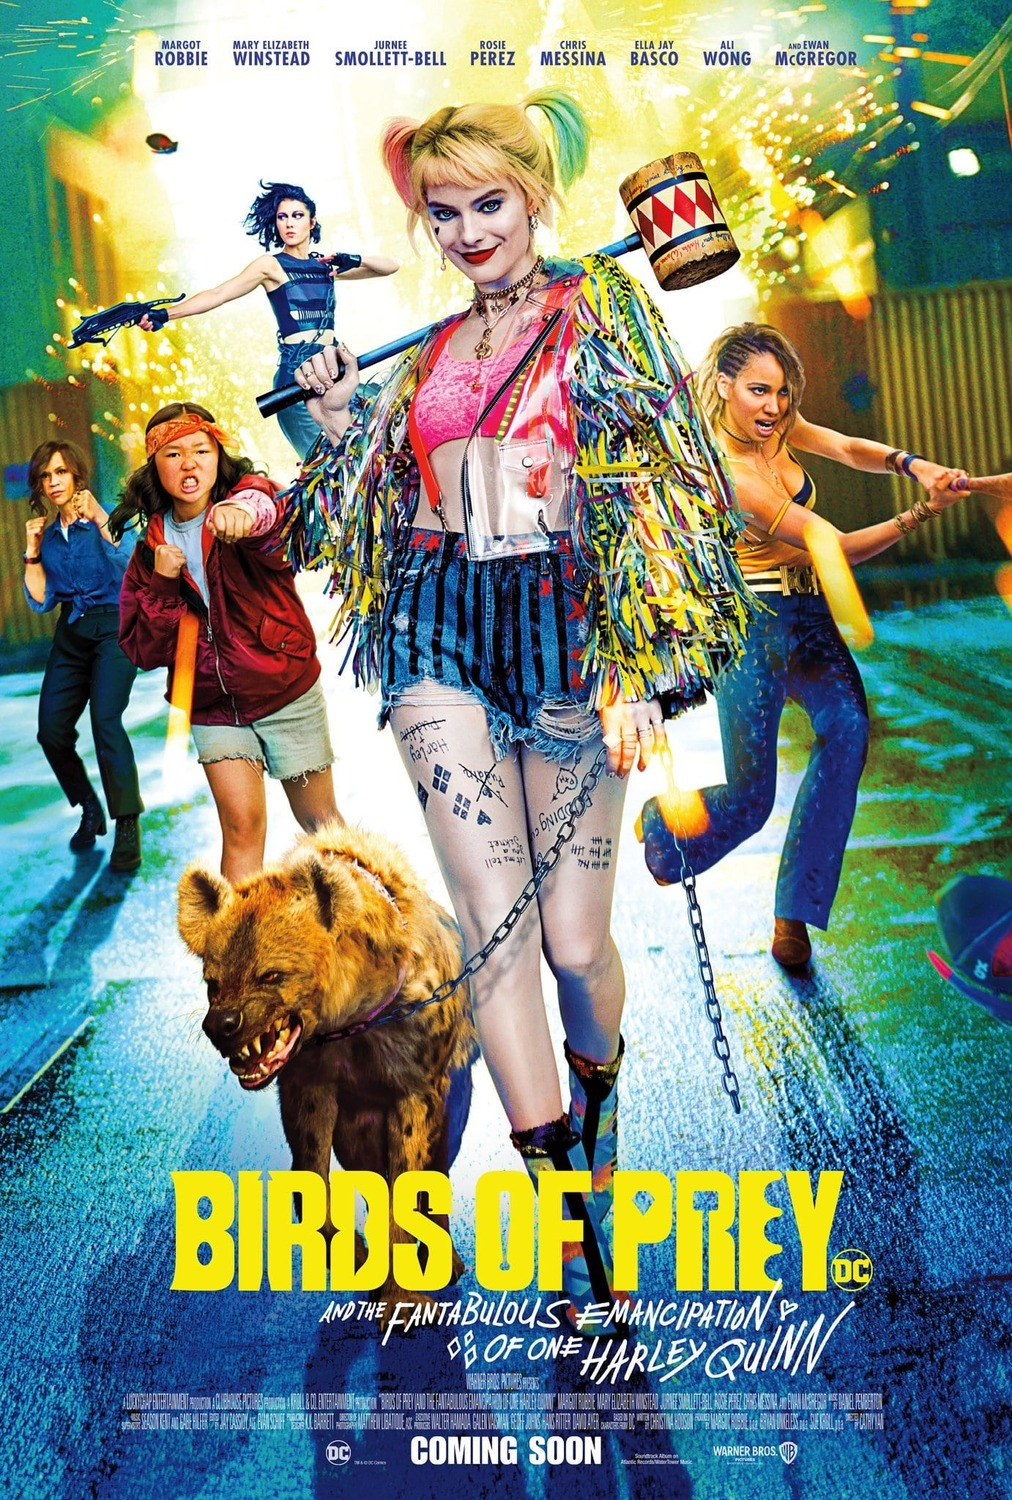 Harley Quinn Film - Birds of Prey